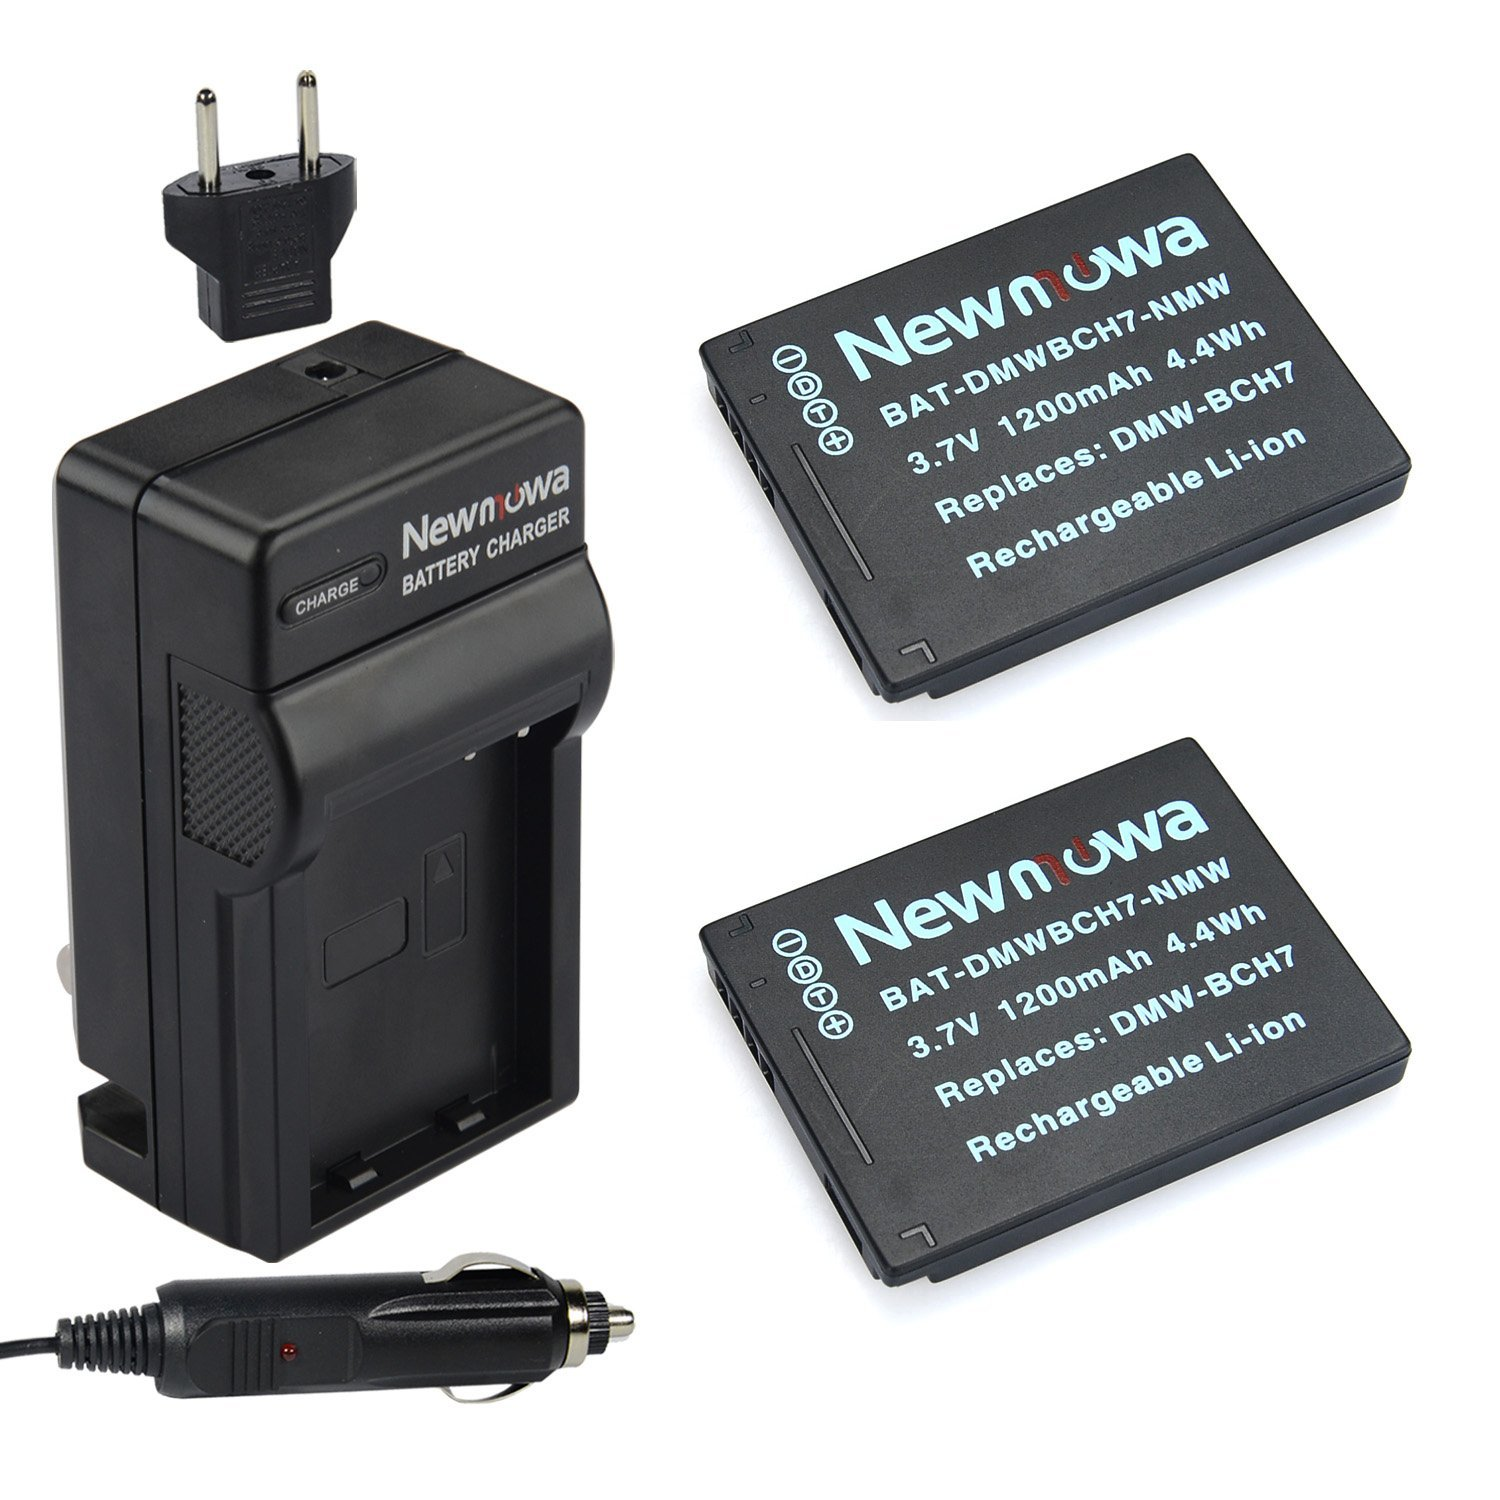 Newmowa DMW-BCH7 Battery (2-Pack) and Charger kit for Panasonic Lumix DMC-FP1 DMC-FP2 DMC-FP3 DMC-FT10 DMC-TS10